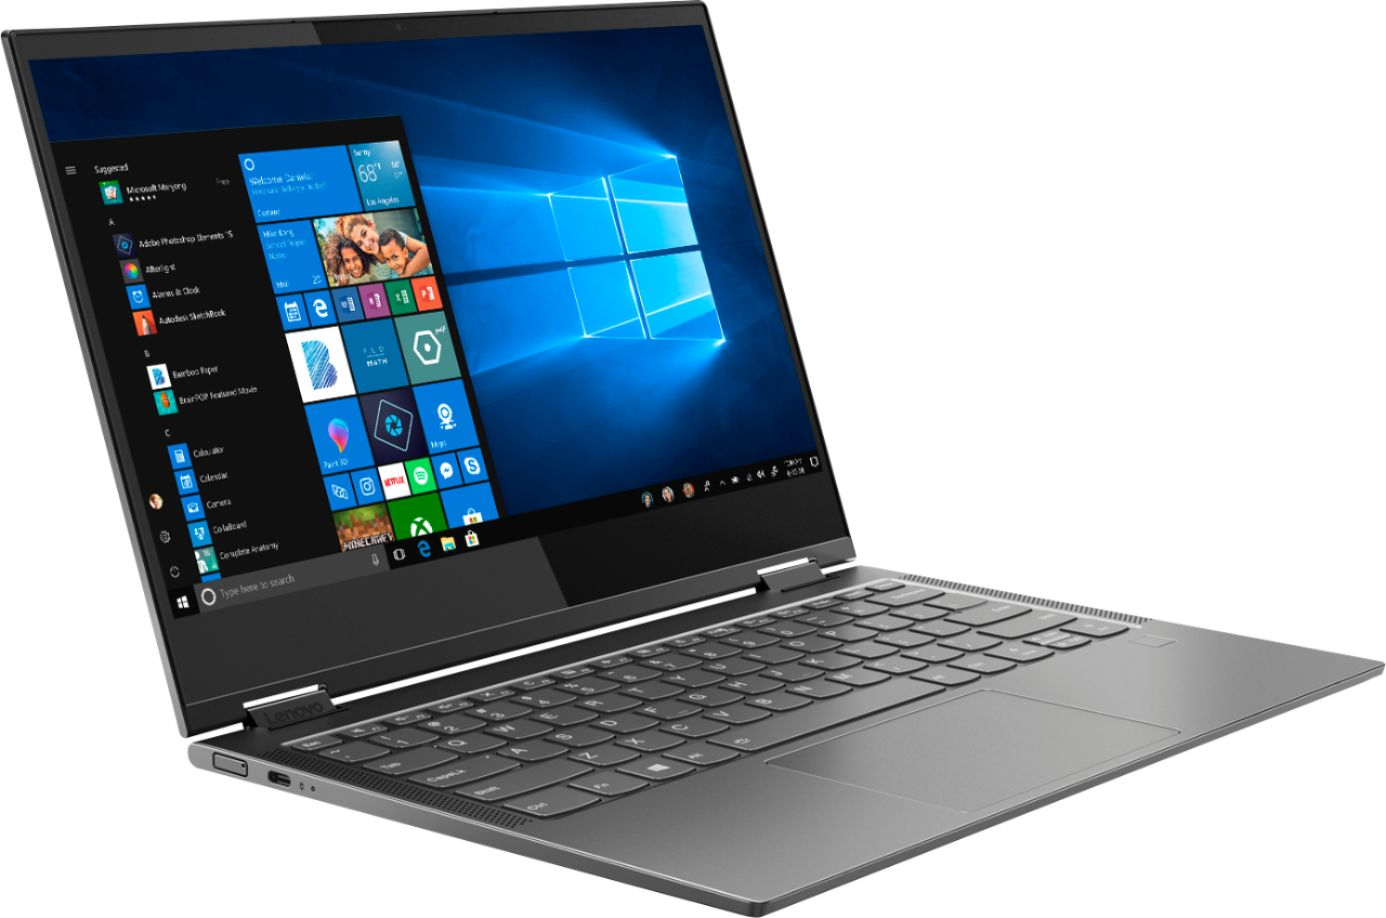 """Angle Zoom. Lenovo - Yoga C630 WOS 2-in-1 13.3"""" Touch-Screen Laptop - Snapdragon 850 - 8GB Memory - 128GB Solid State Drive (Verizon) - Iron Gray."""